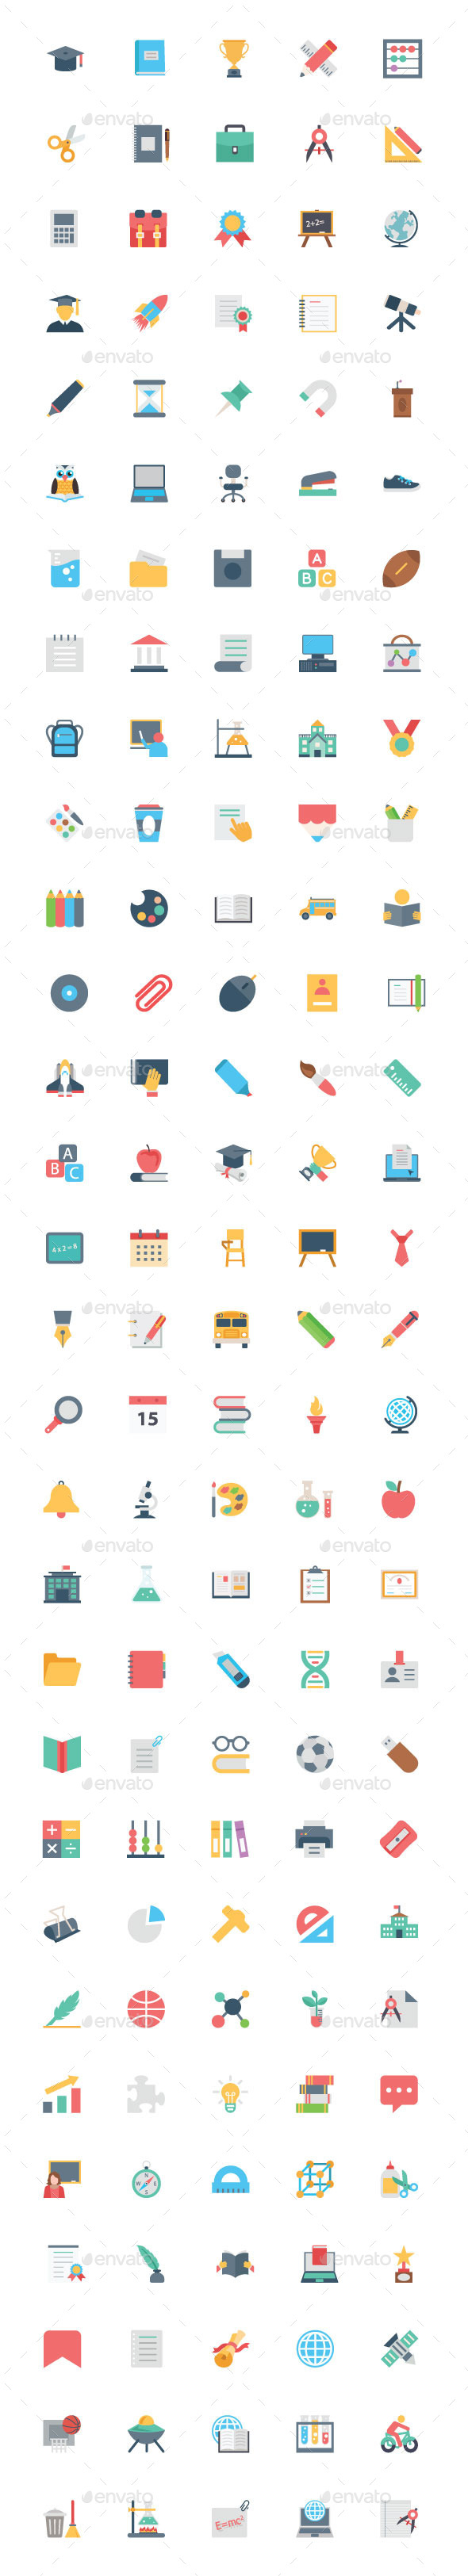 150 Flat Education Vector Icons - Icons